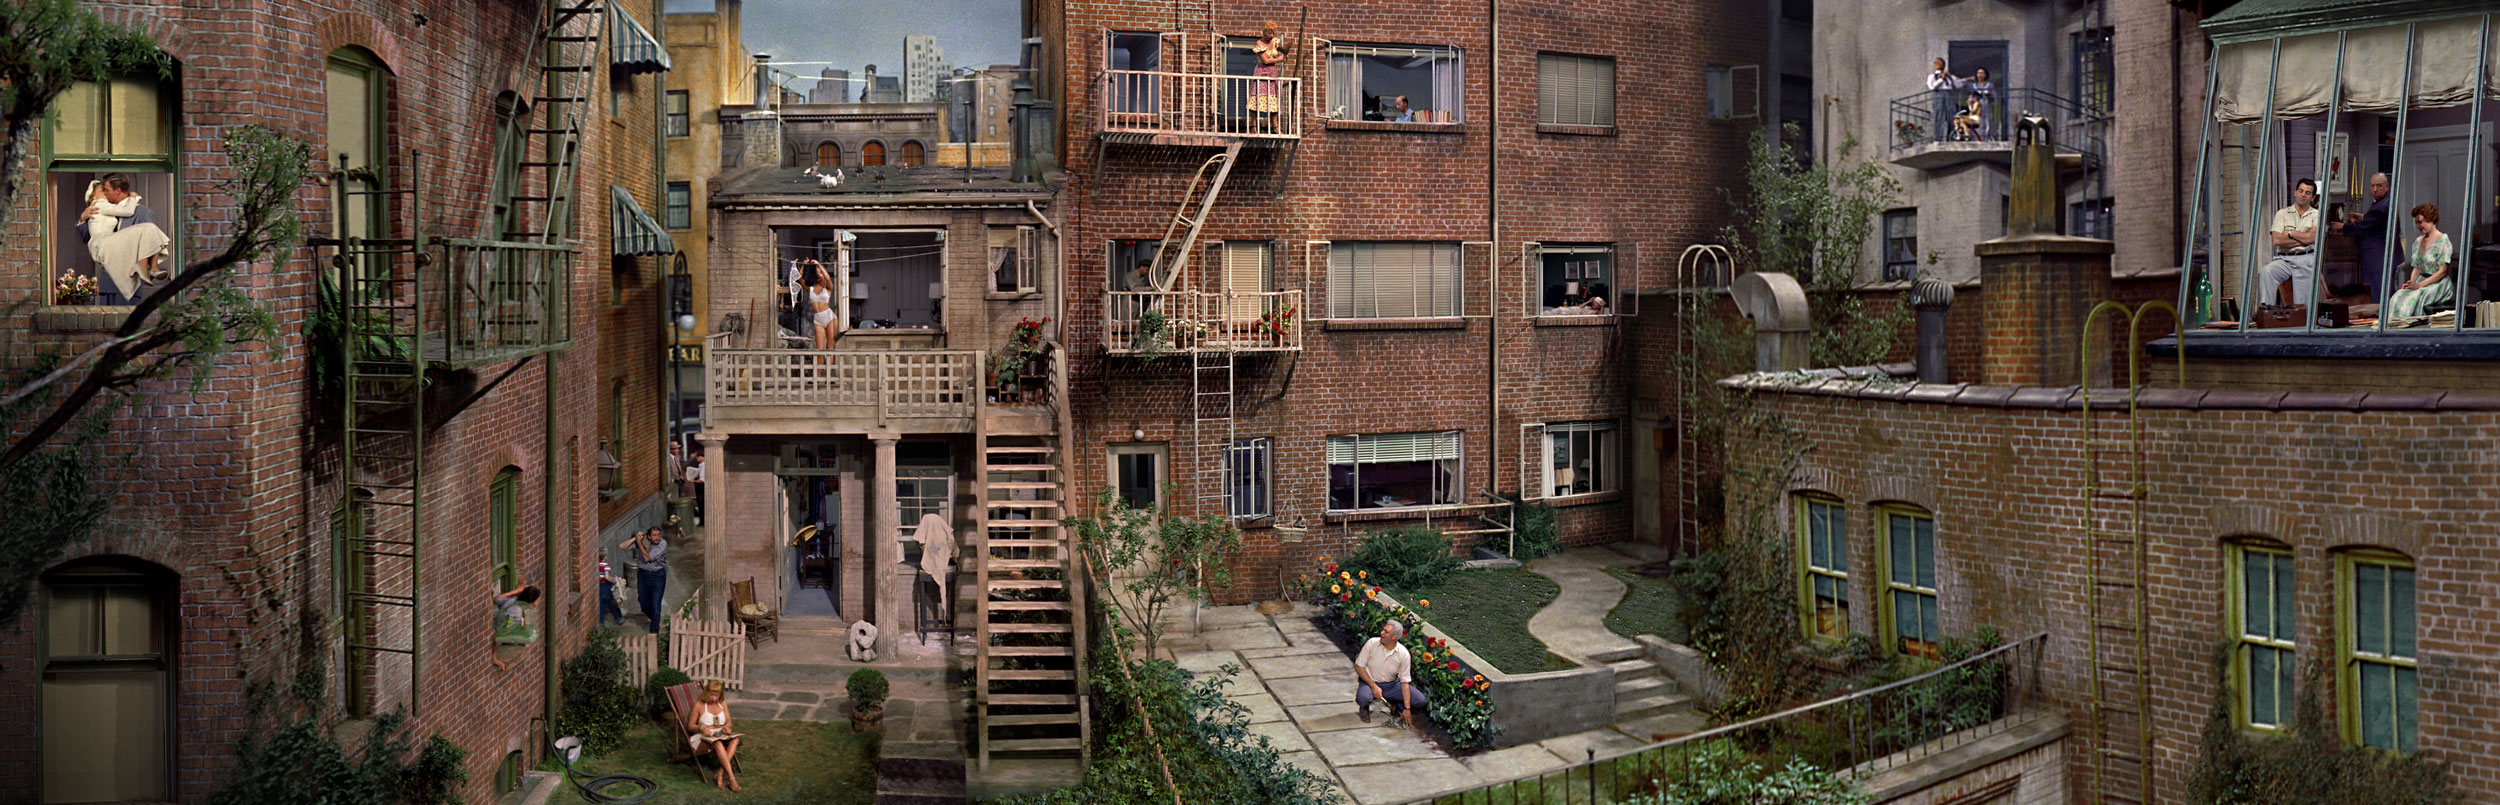 Image result for rear window